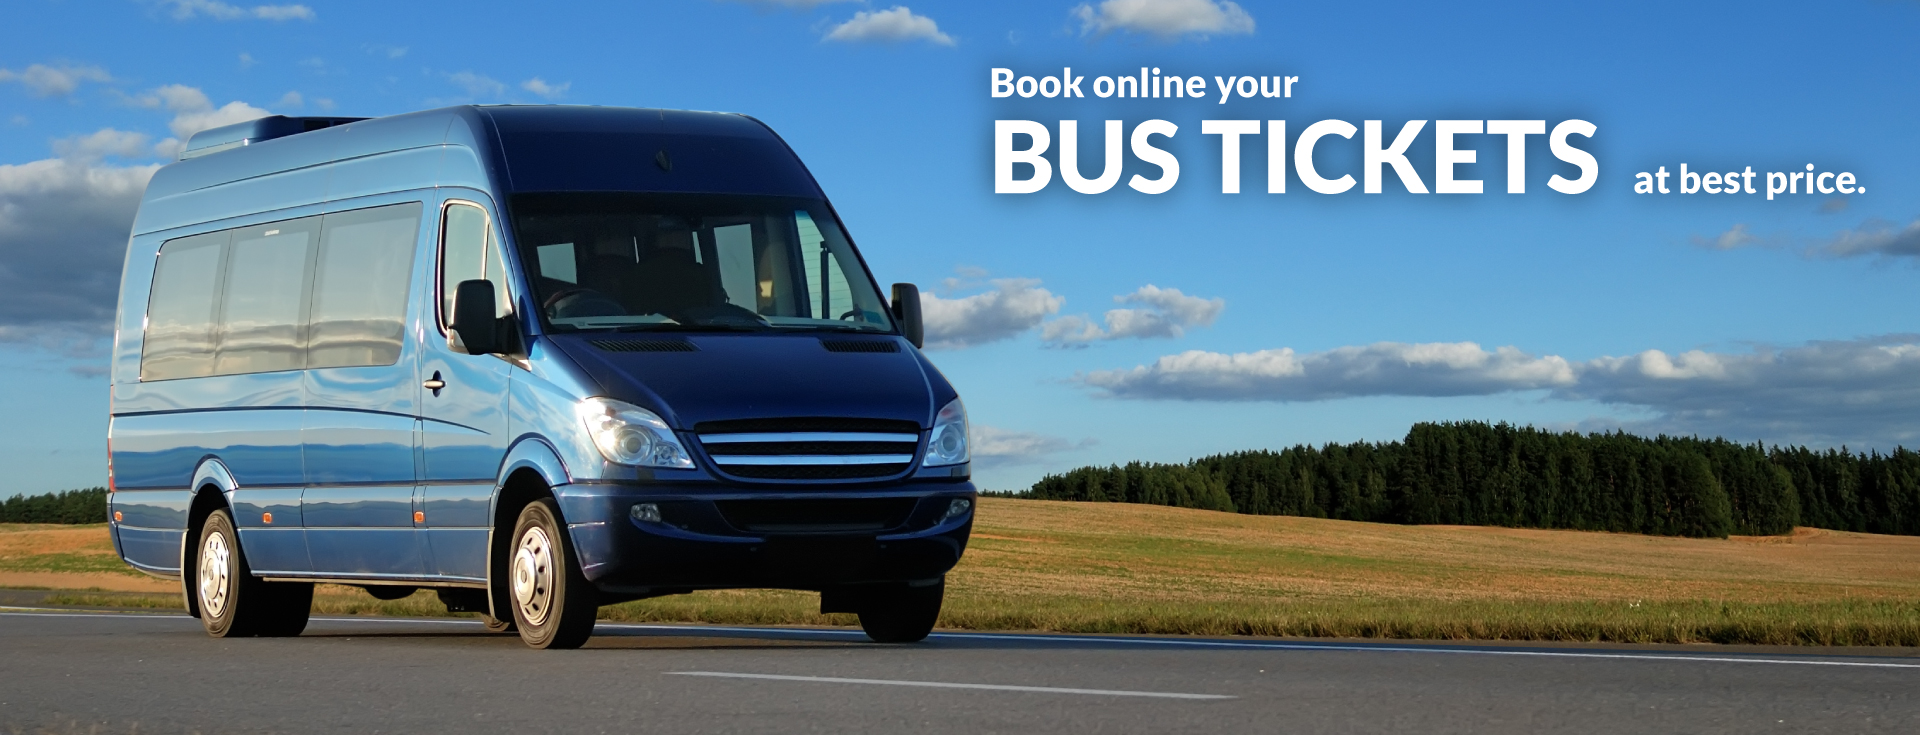 Bus Bookings at Lowest Cost